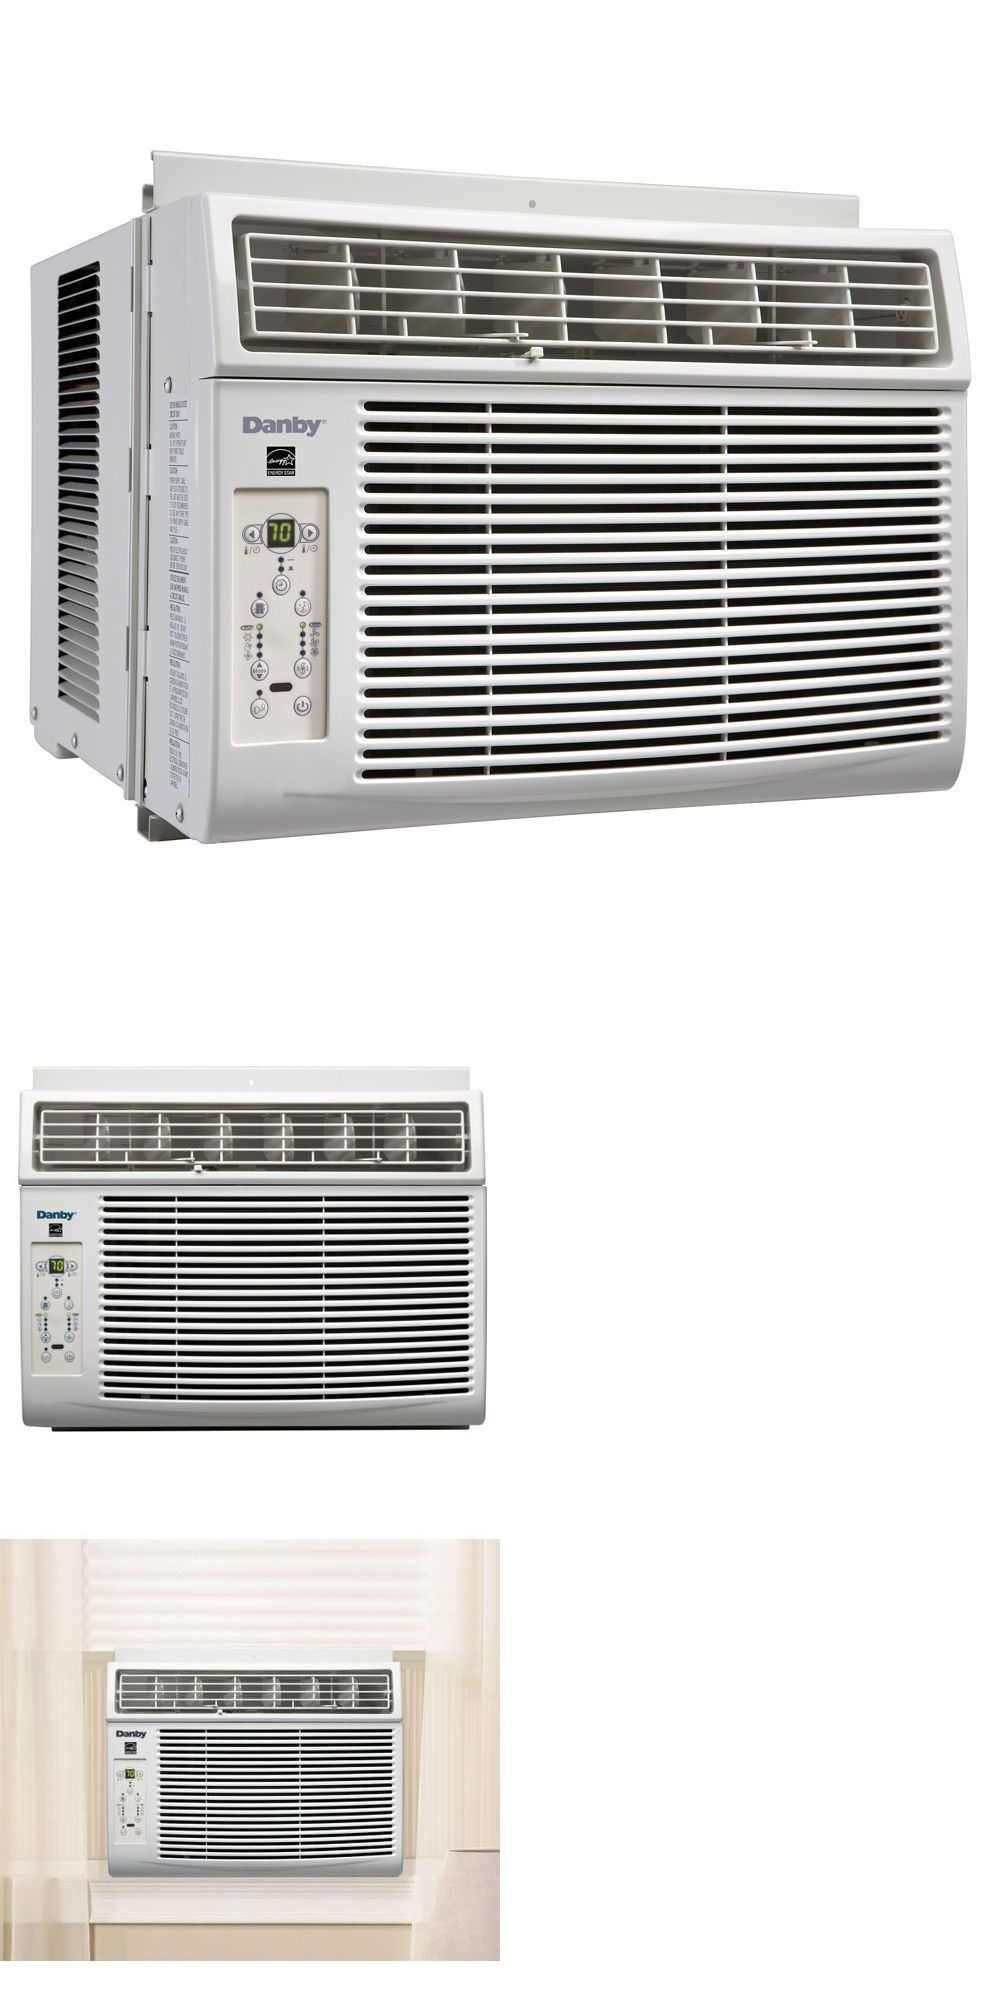 Central Air Conditioners 185108 White Danby 8000btu Window Air Conditioner Cools Up To 350 Sq Window Air Conditioner Central Air Conditioners Air Conditioner